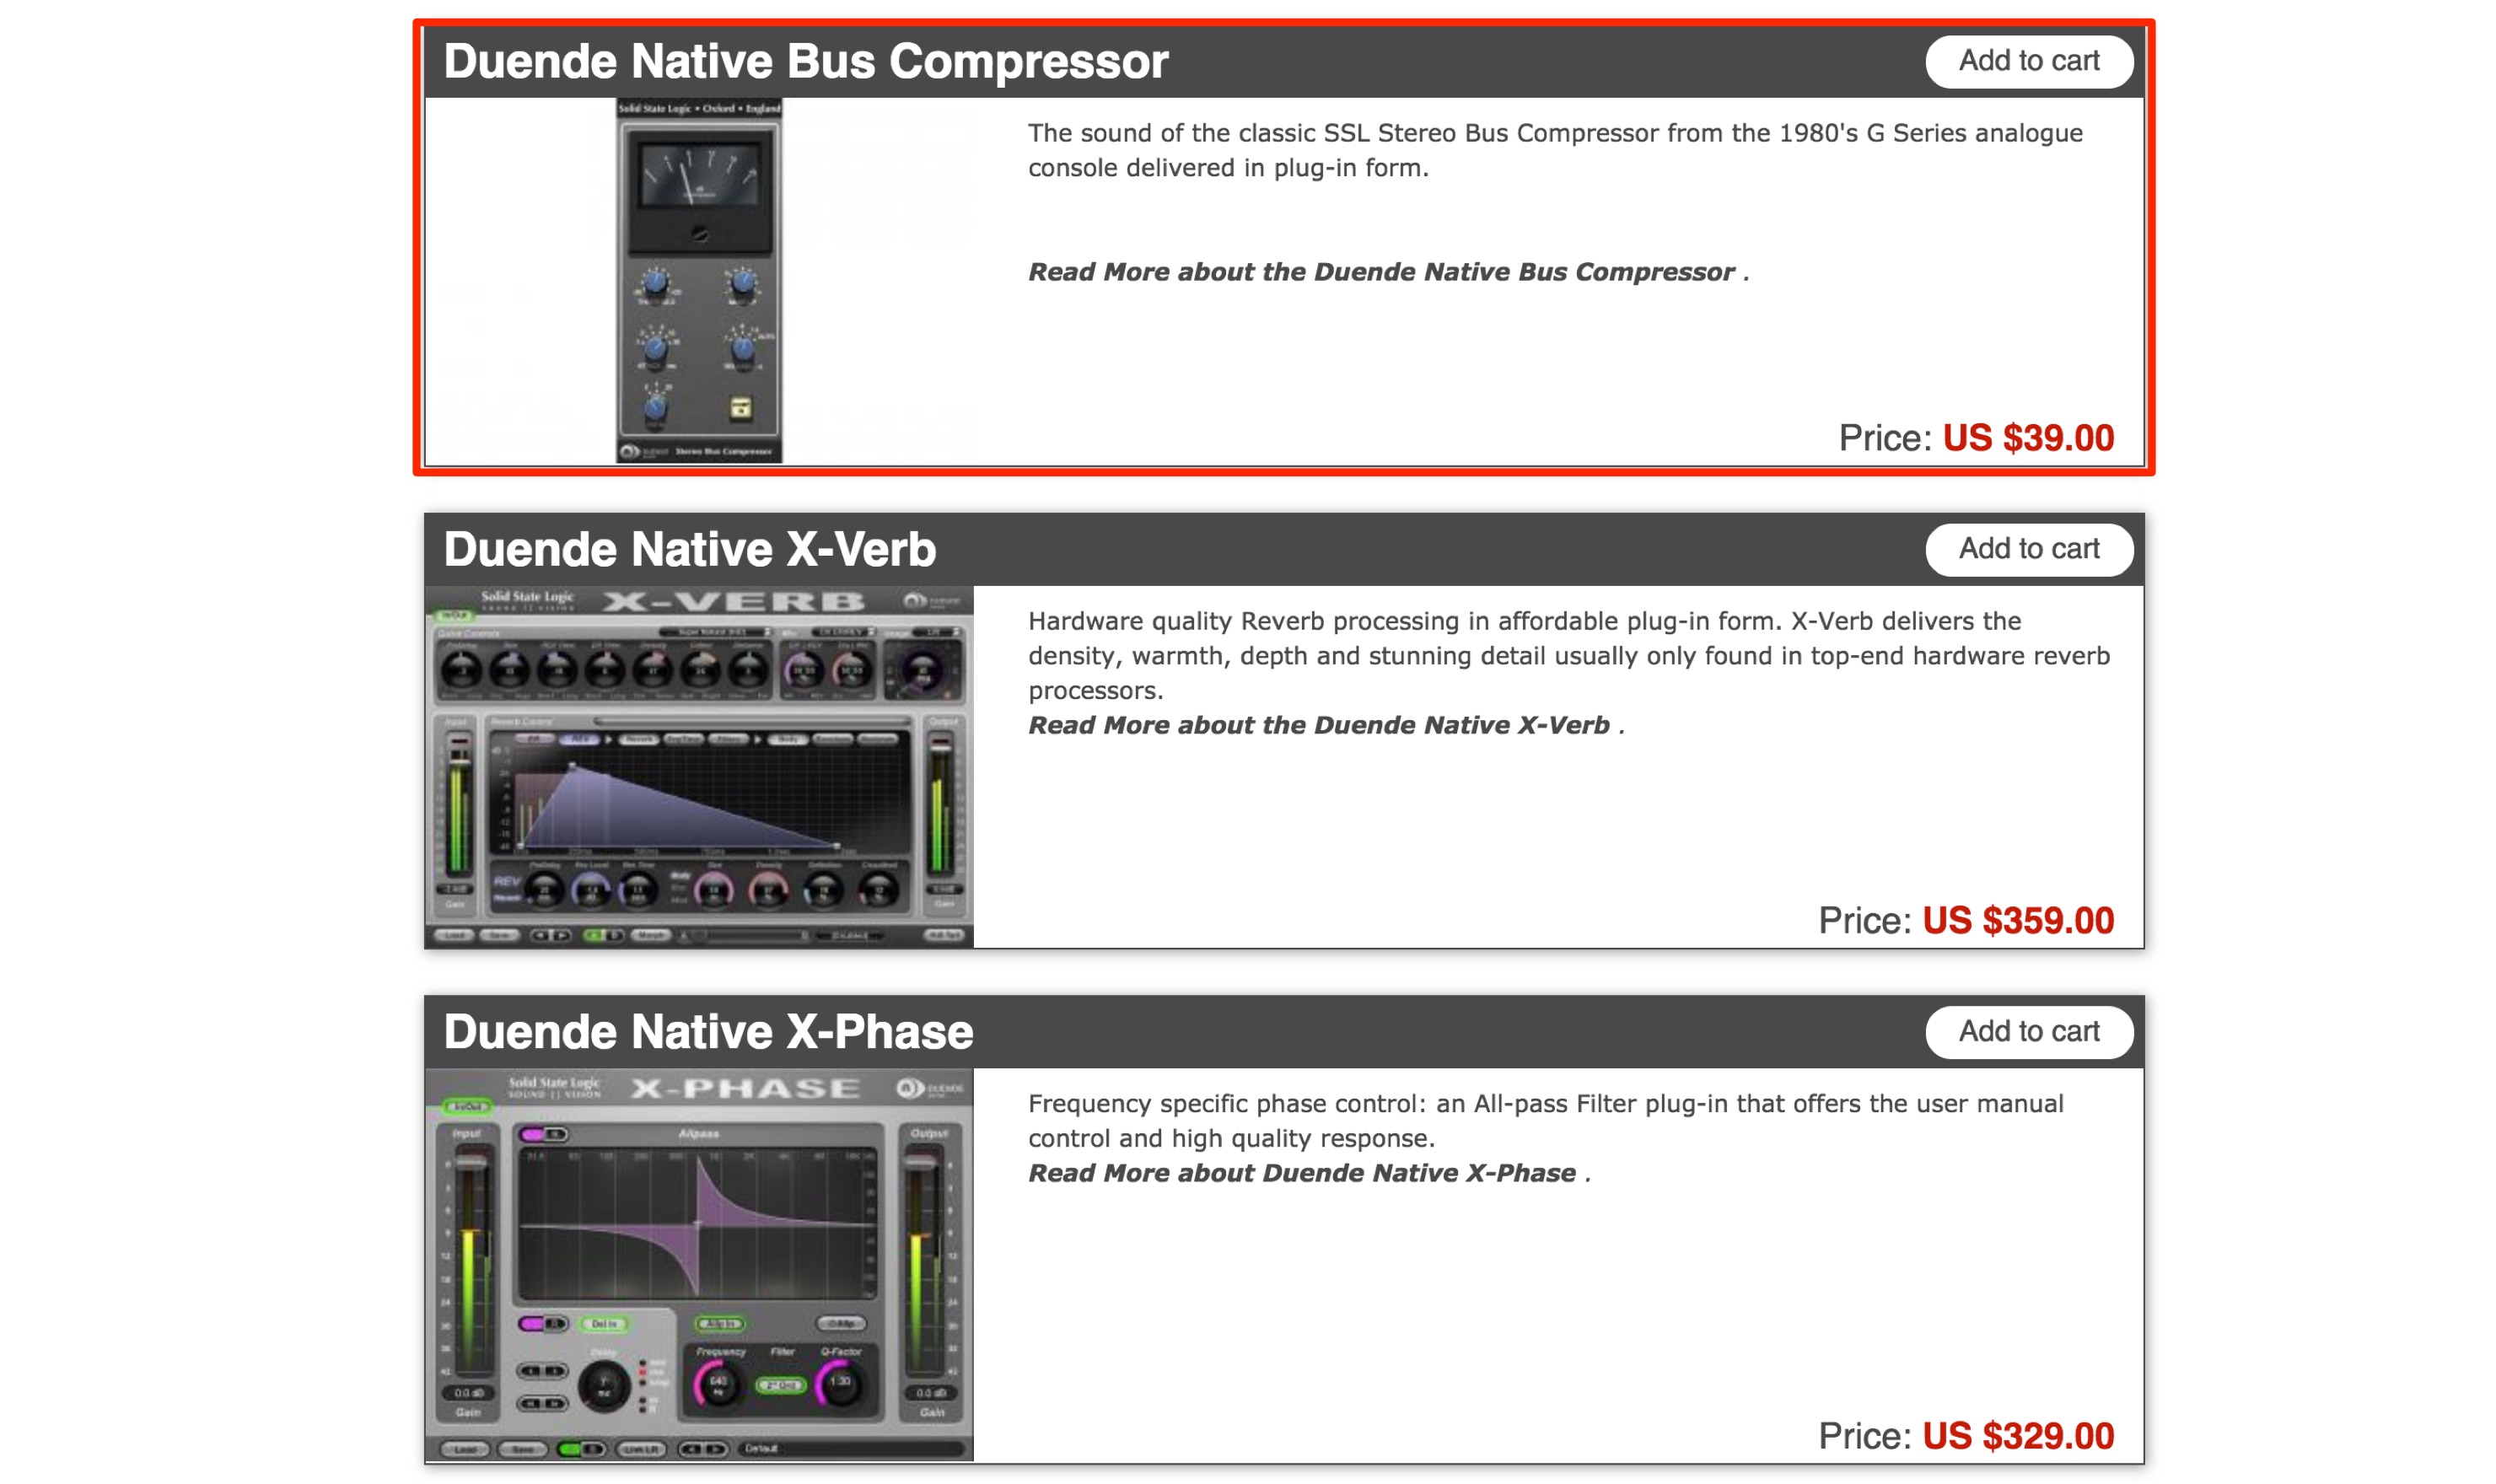 Duende Native Bus Compressor-1